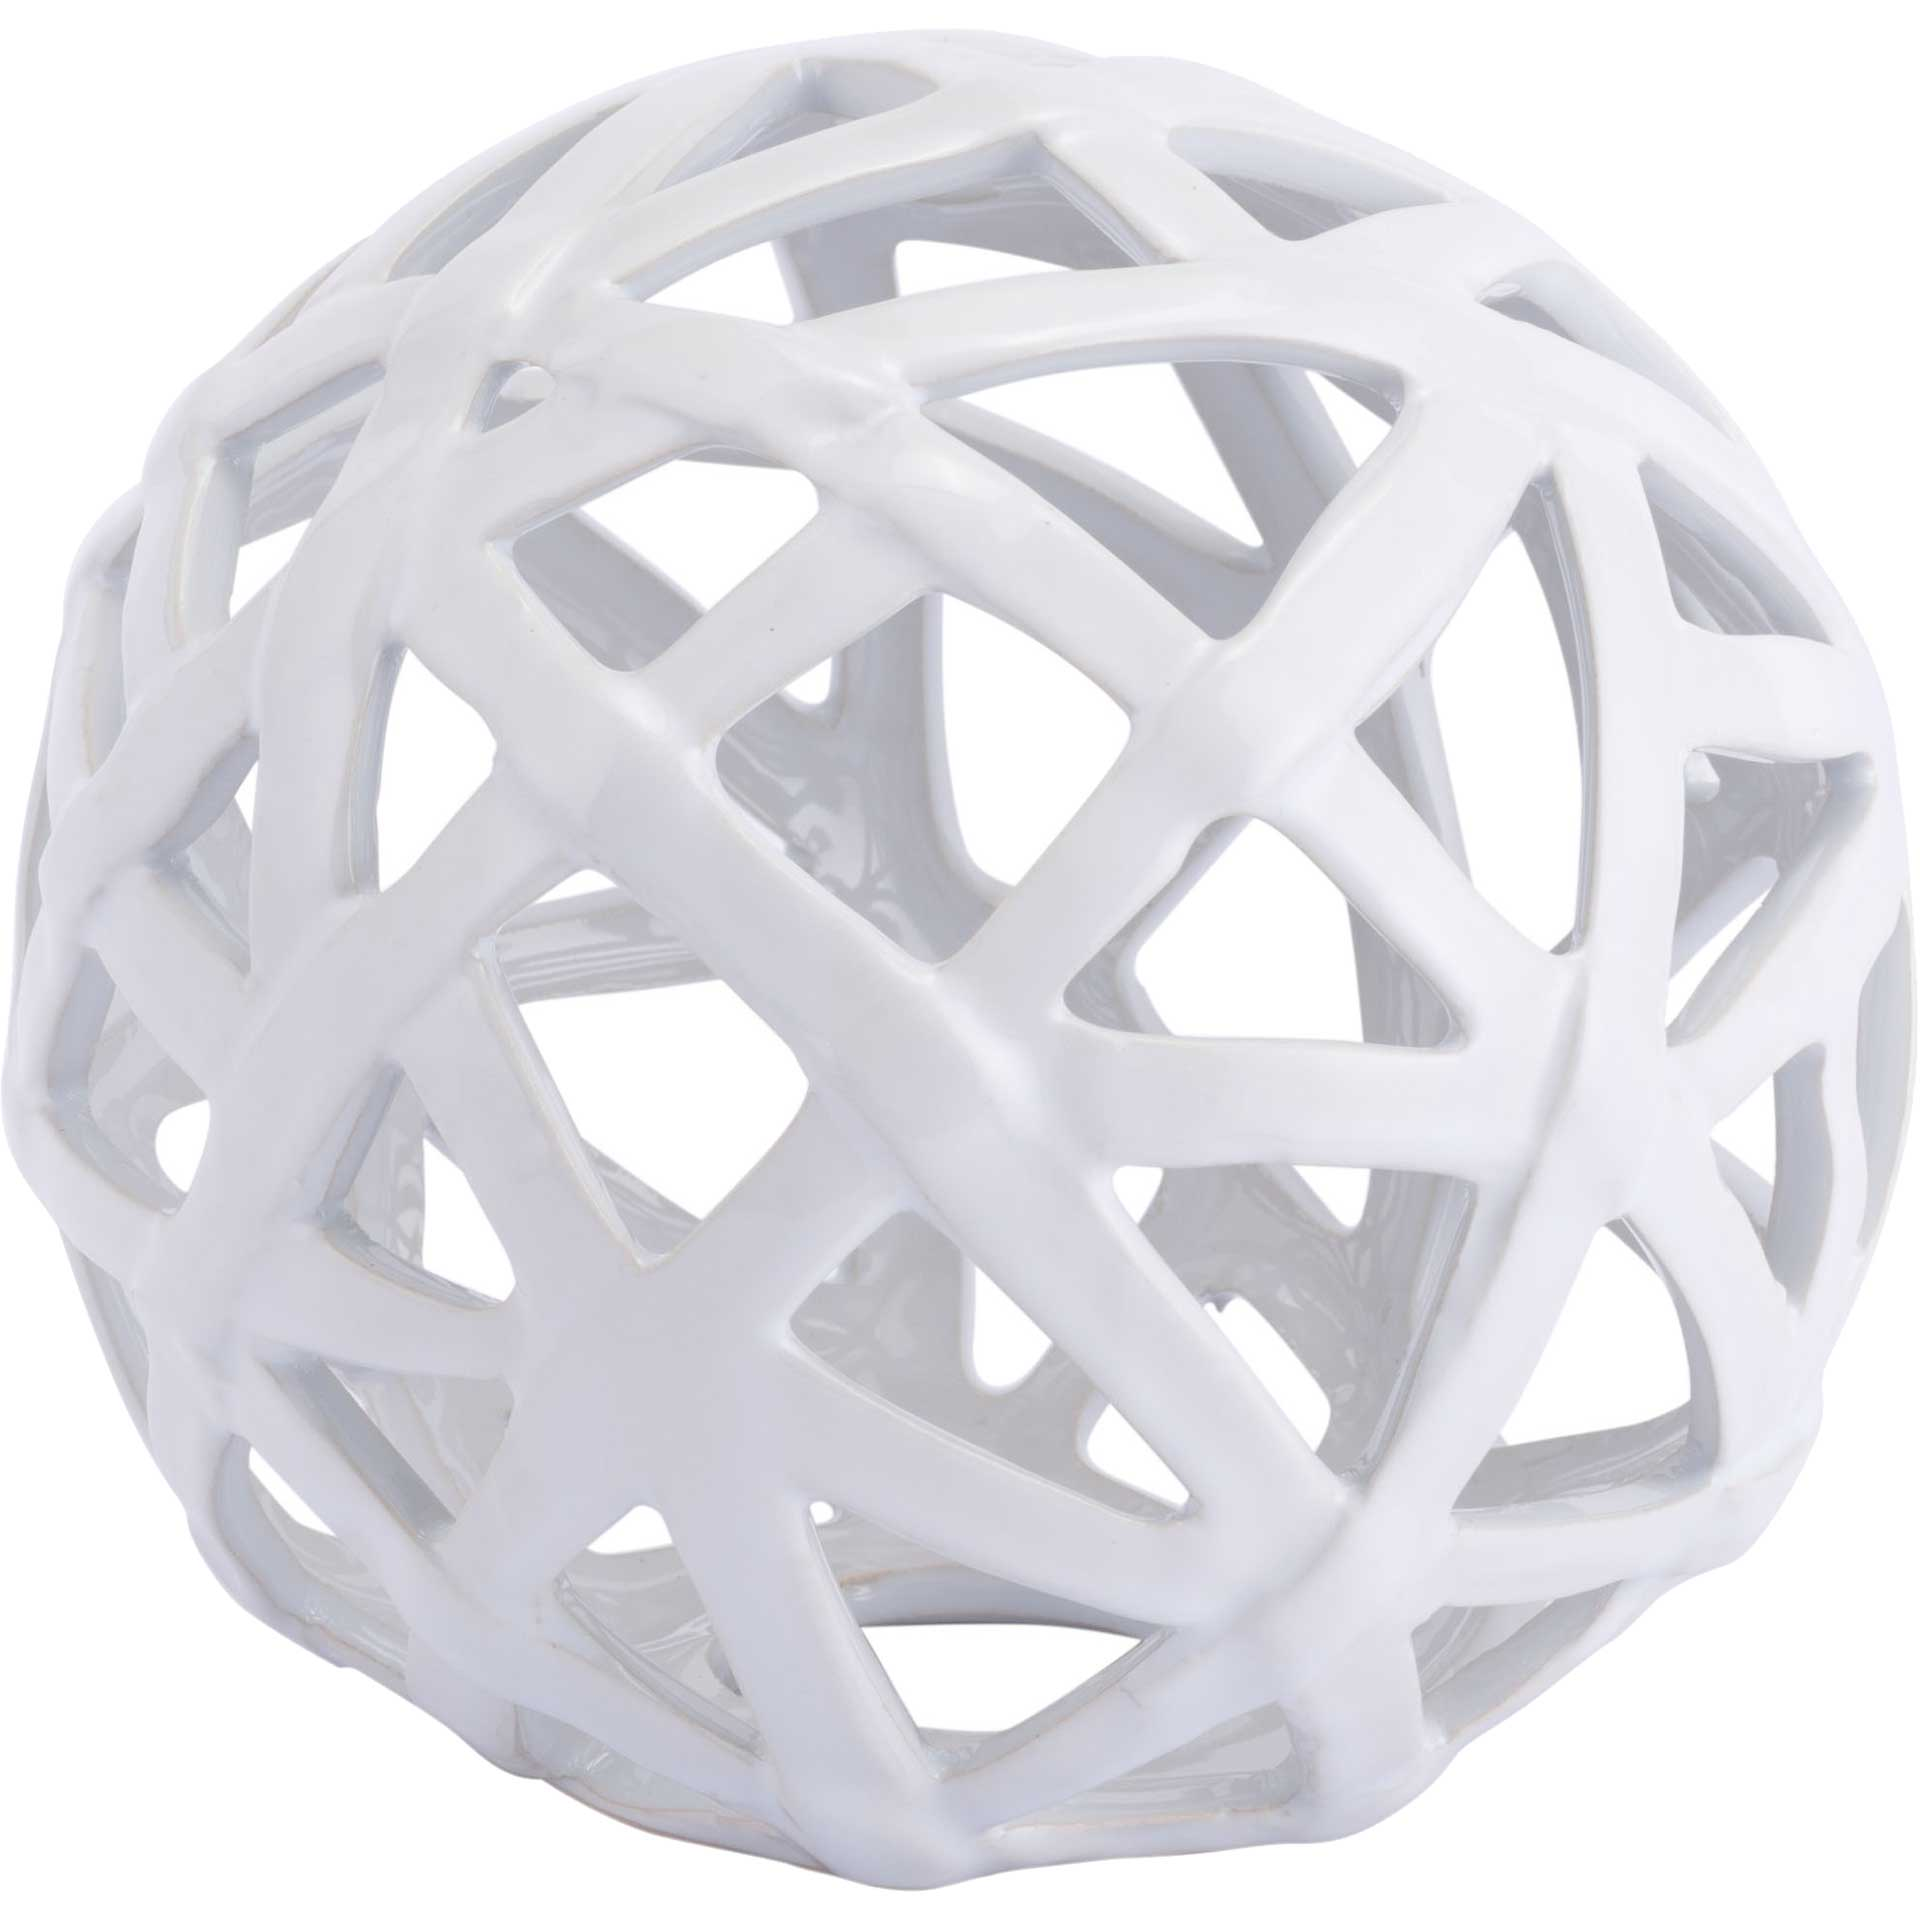 Orb Hollow White